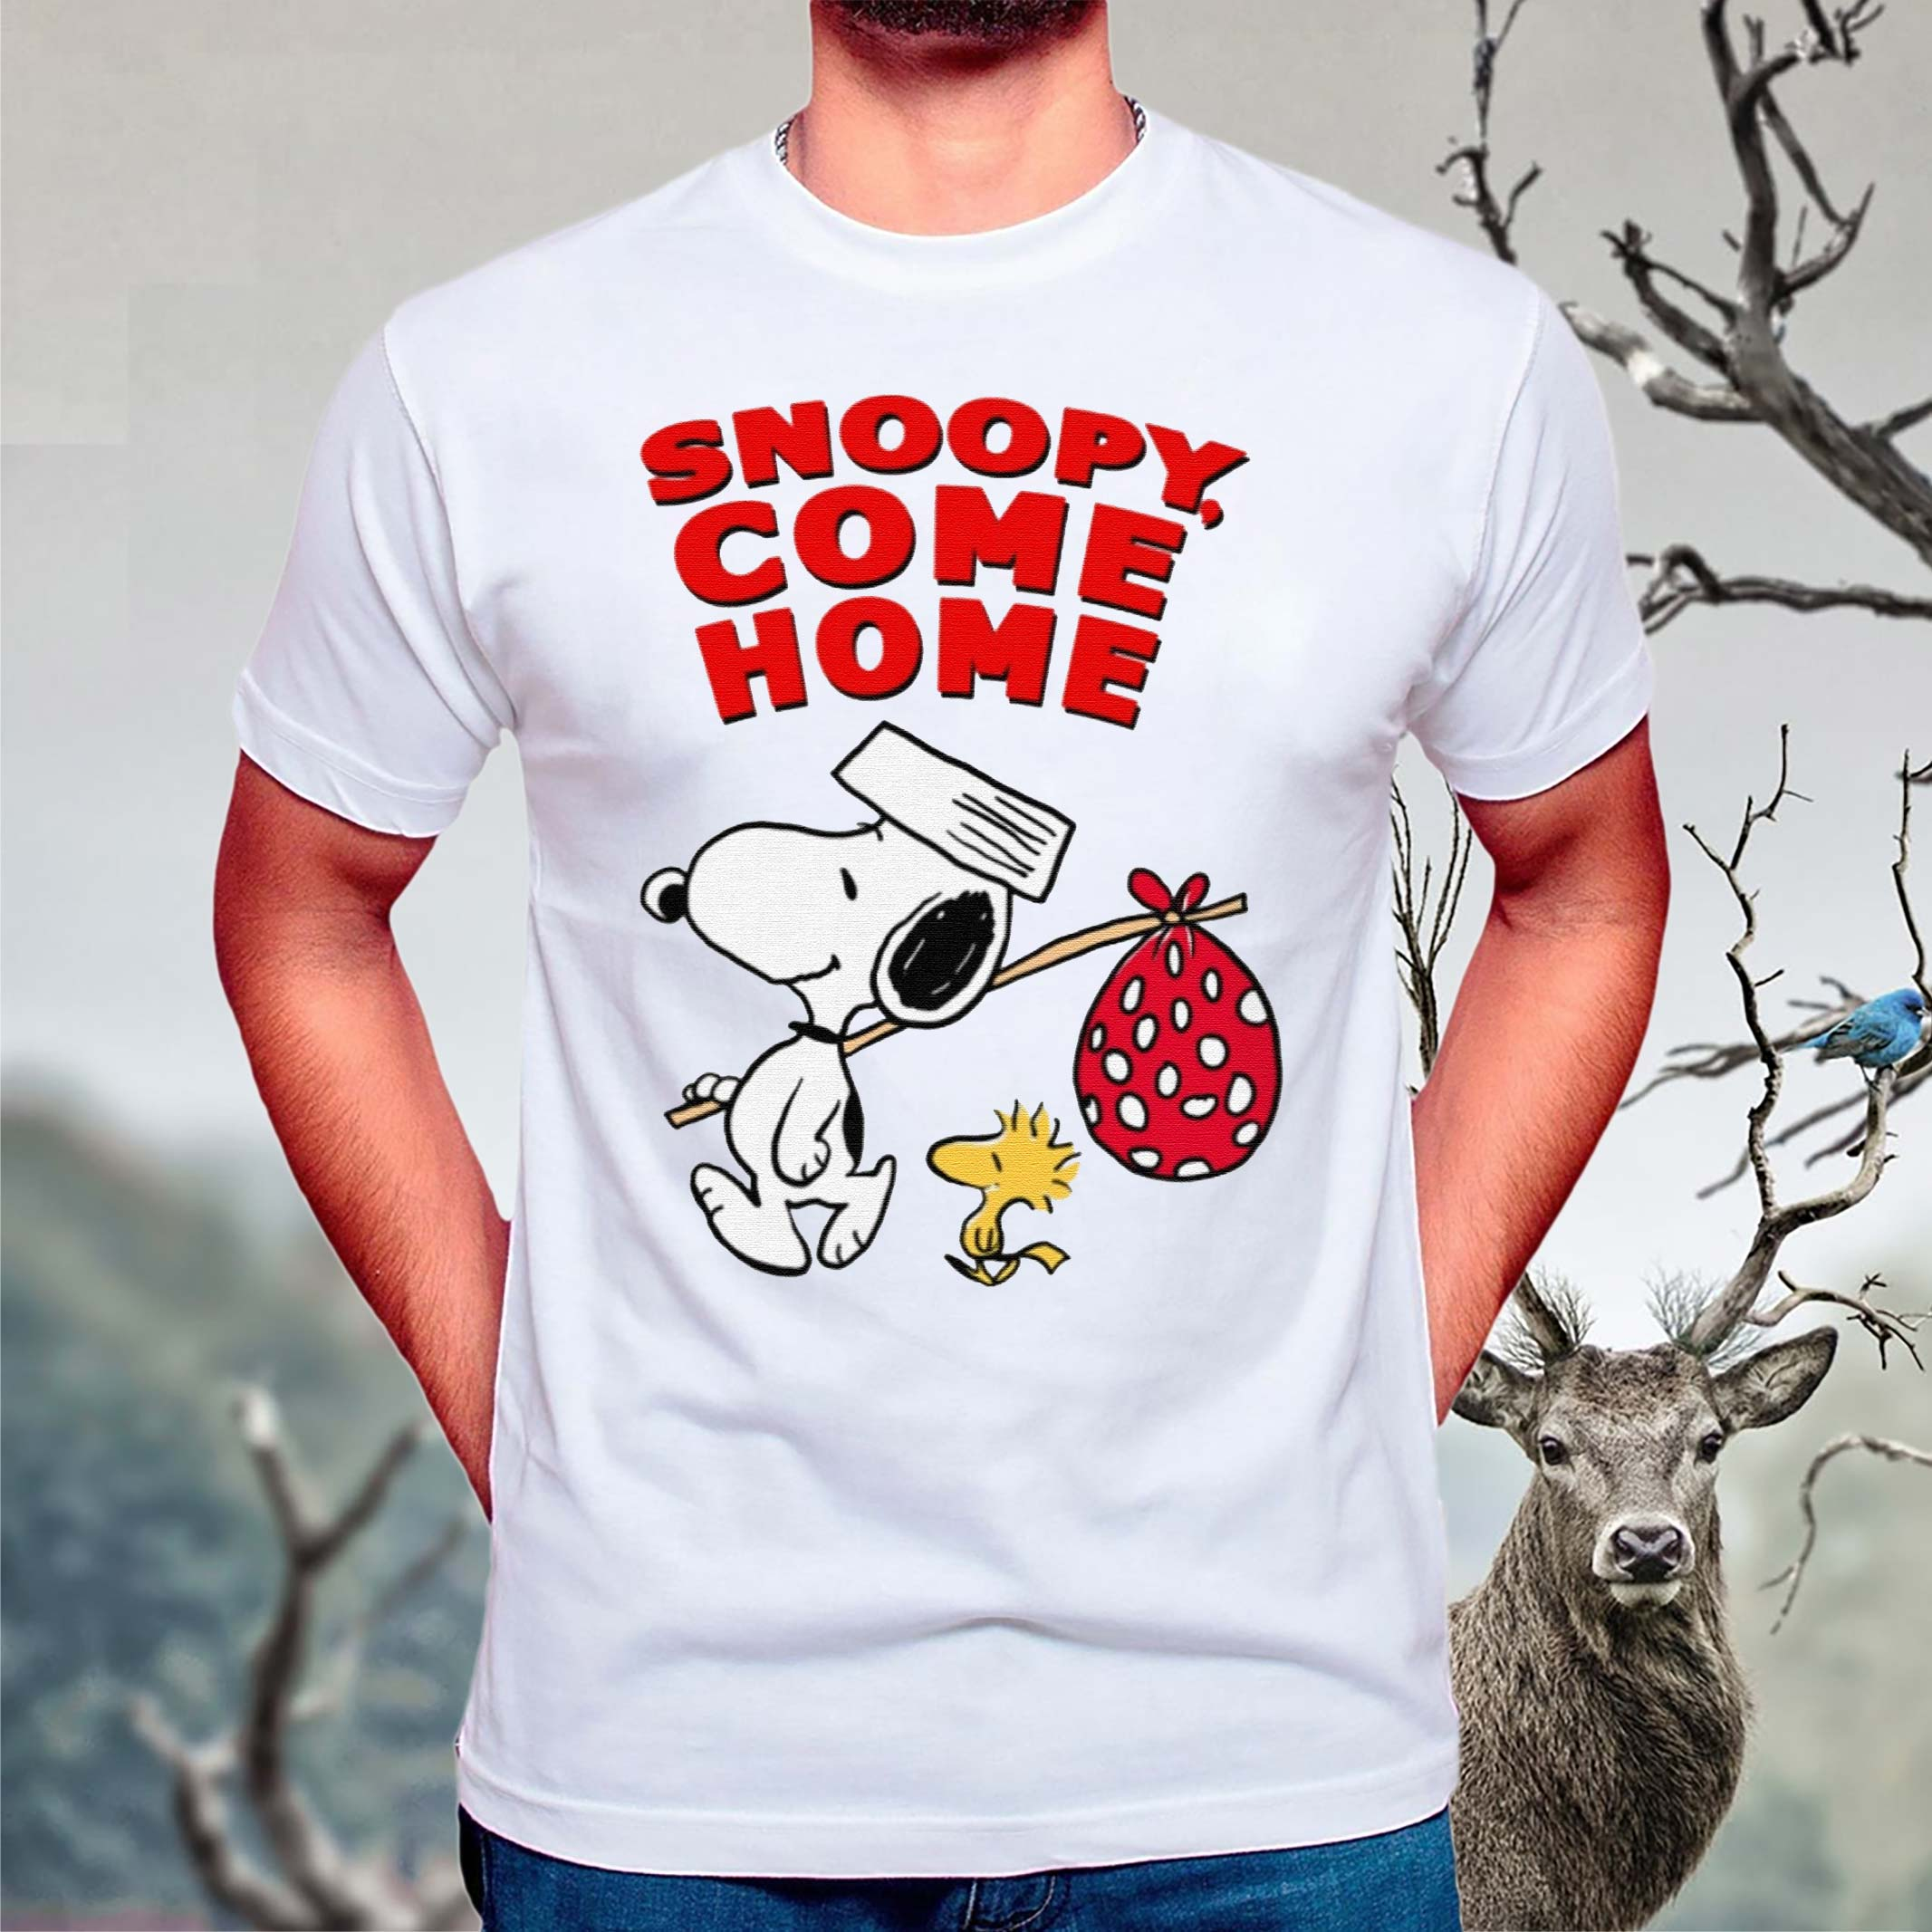 Snoopy-Come-Home-Shirt